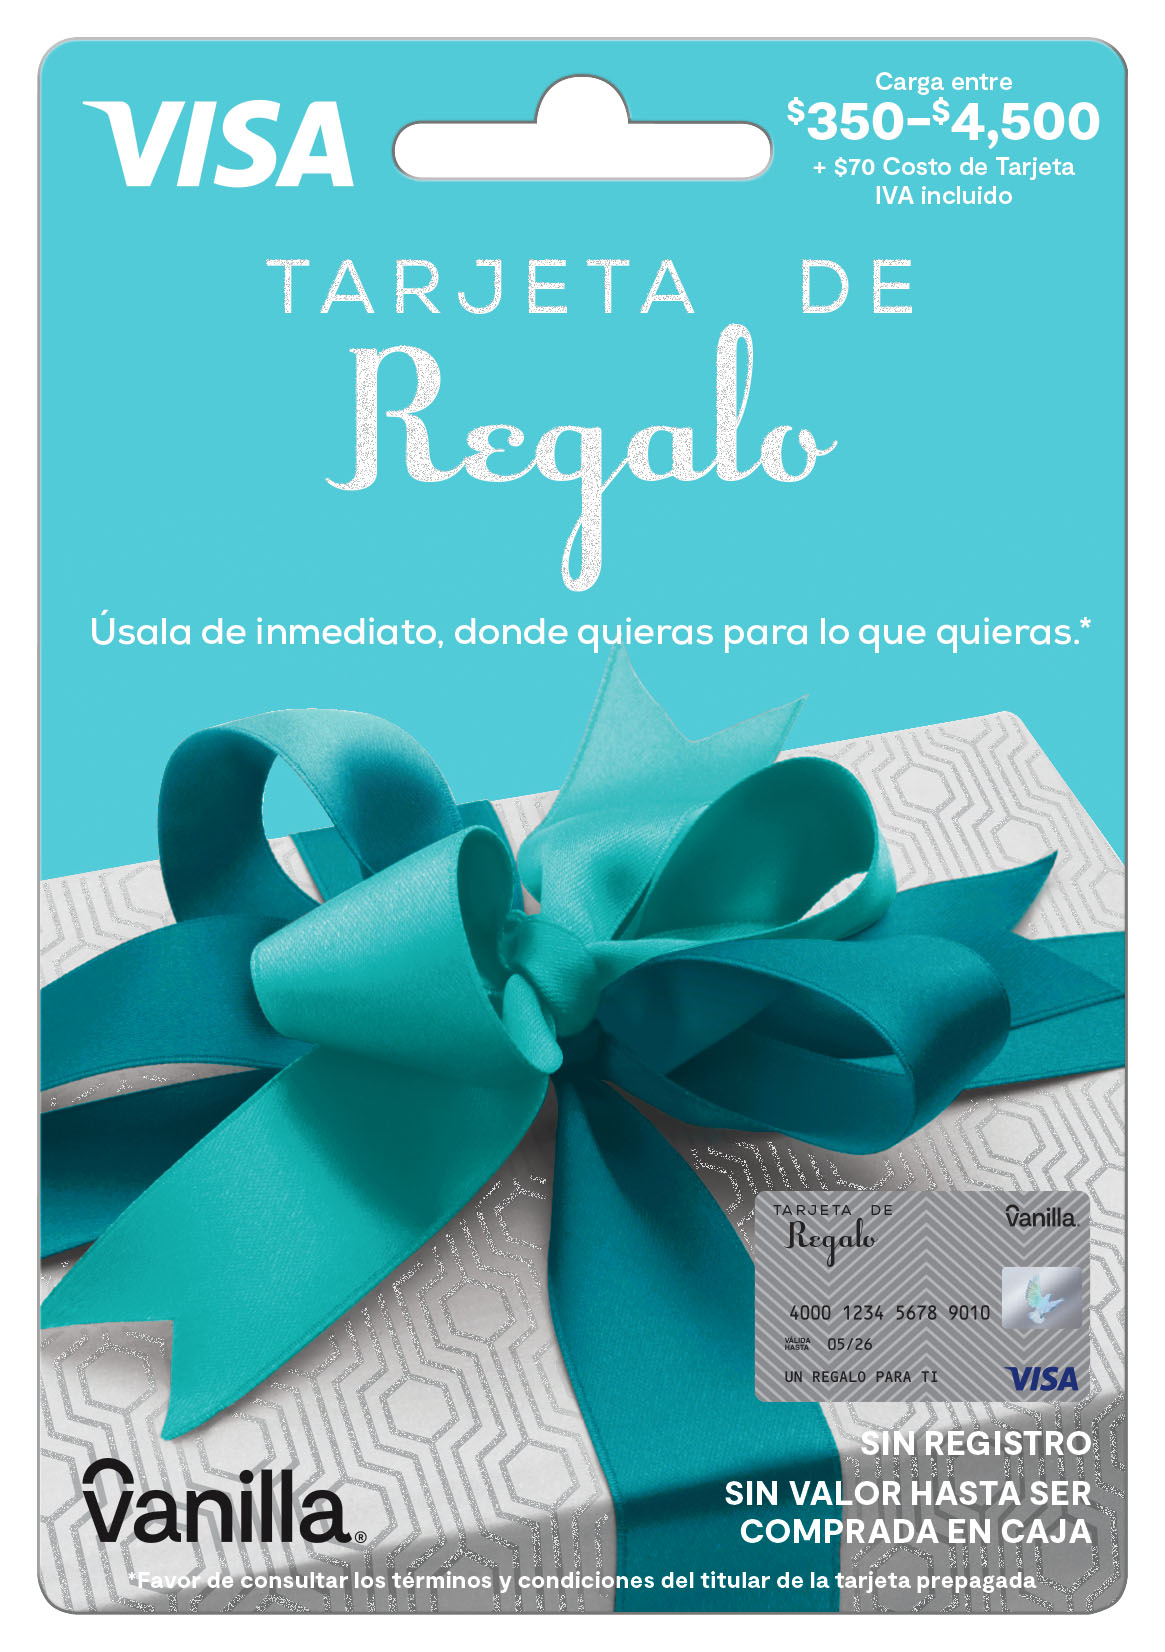 The Ideal Gift For Everyone Debuts In Mexico Vanilla Visa Global Prepaid And Gift Card Brand Launched